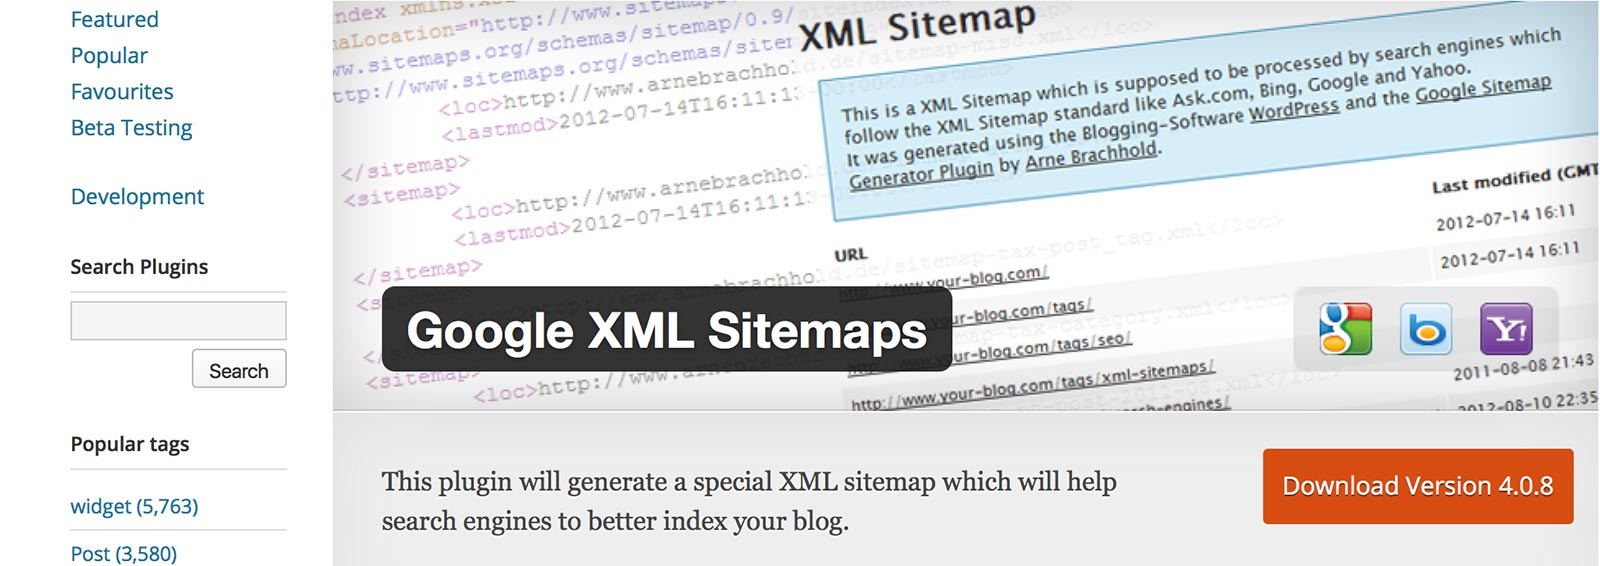 sitemap pt post 10 stunning fabulous split sitemaps with sitemap